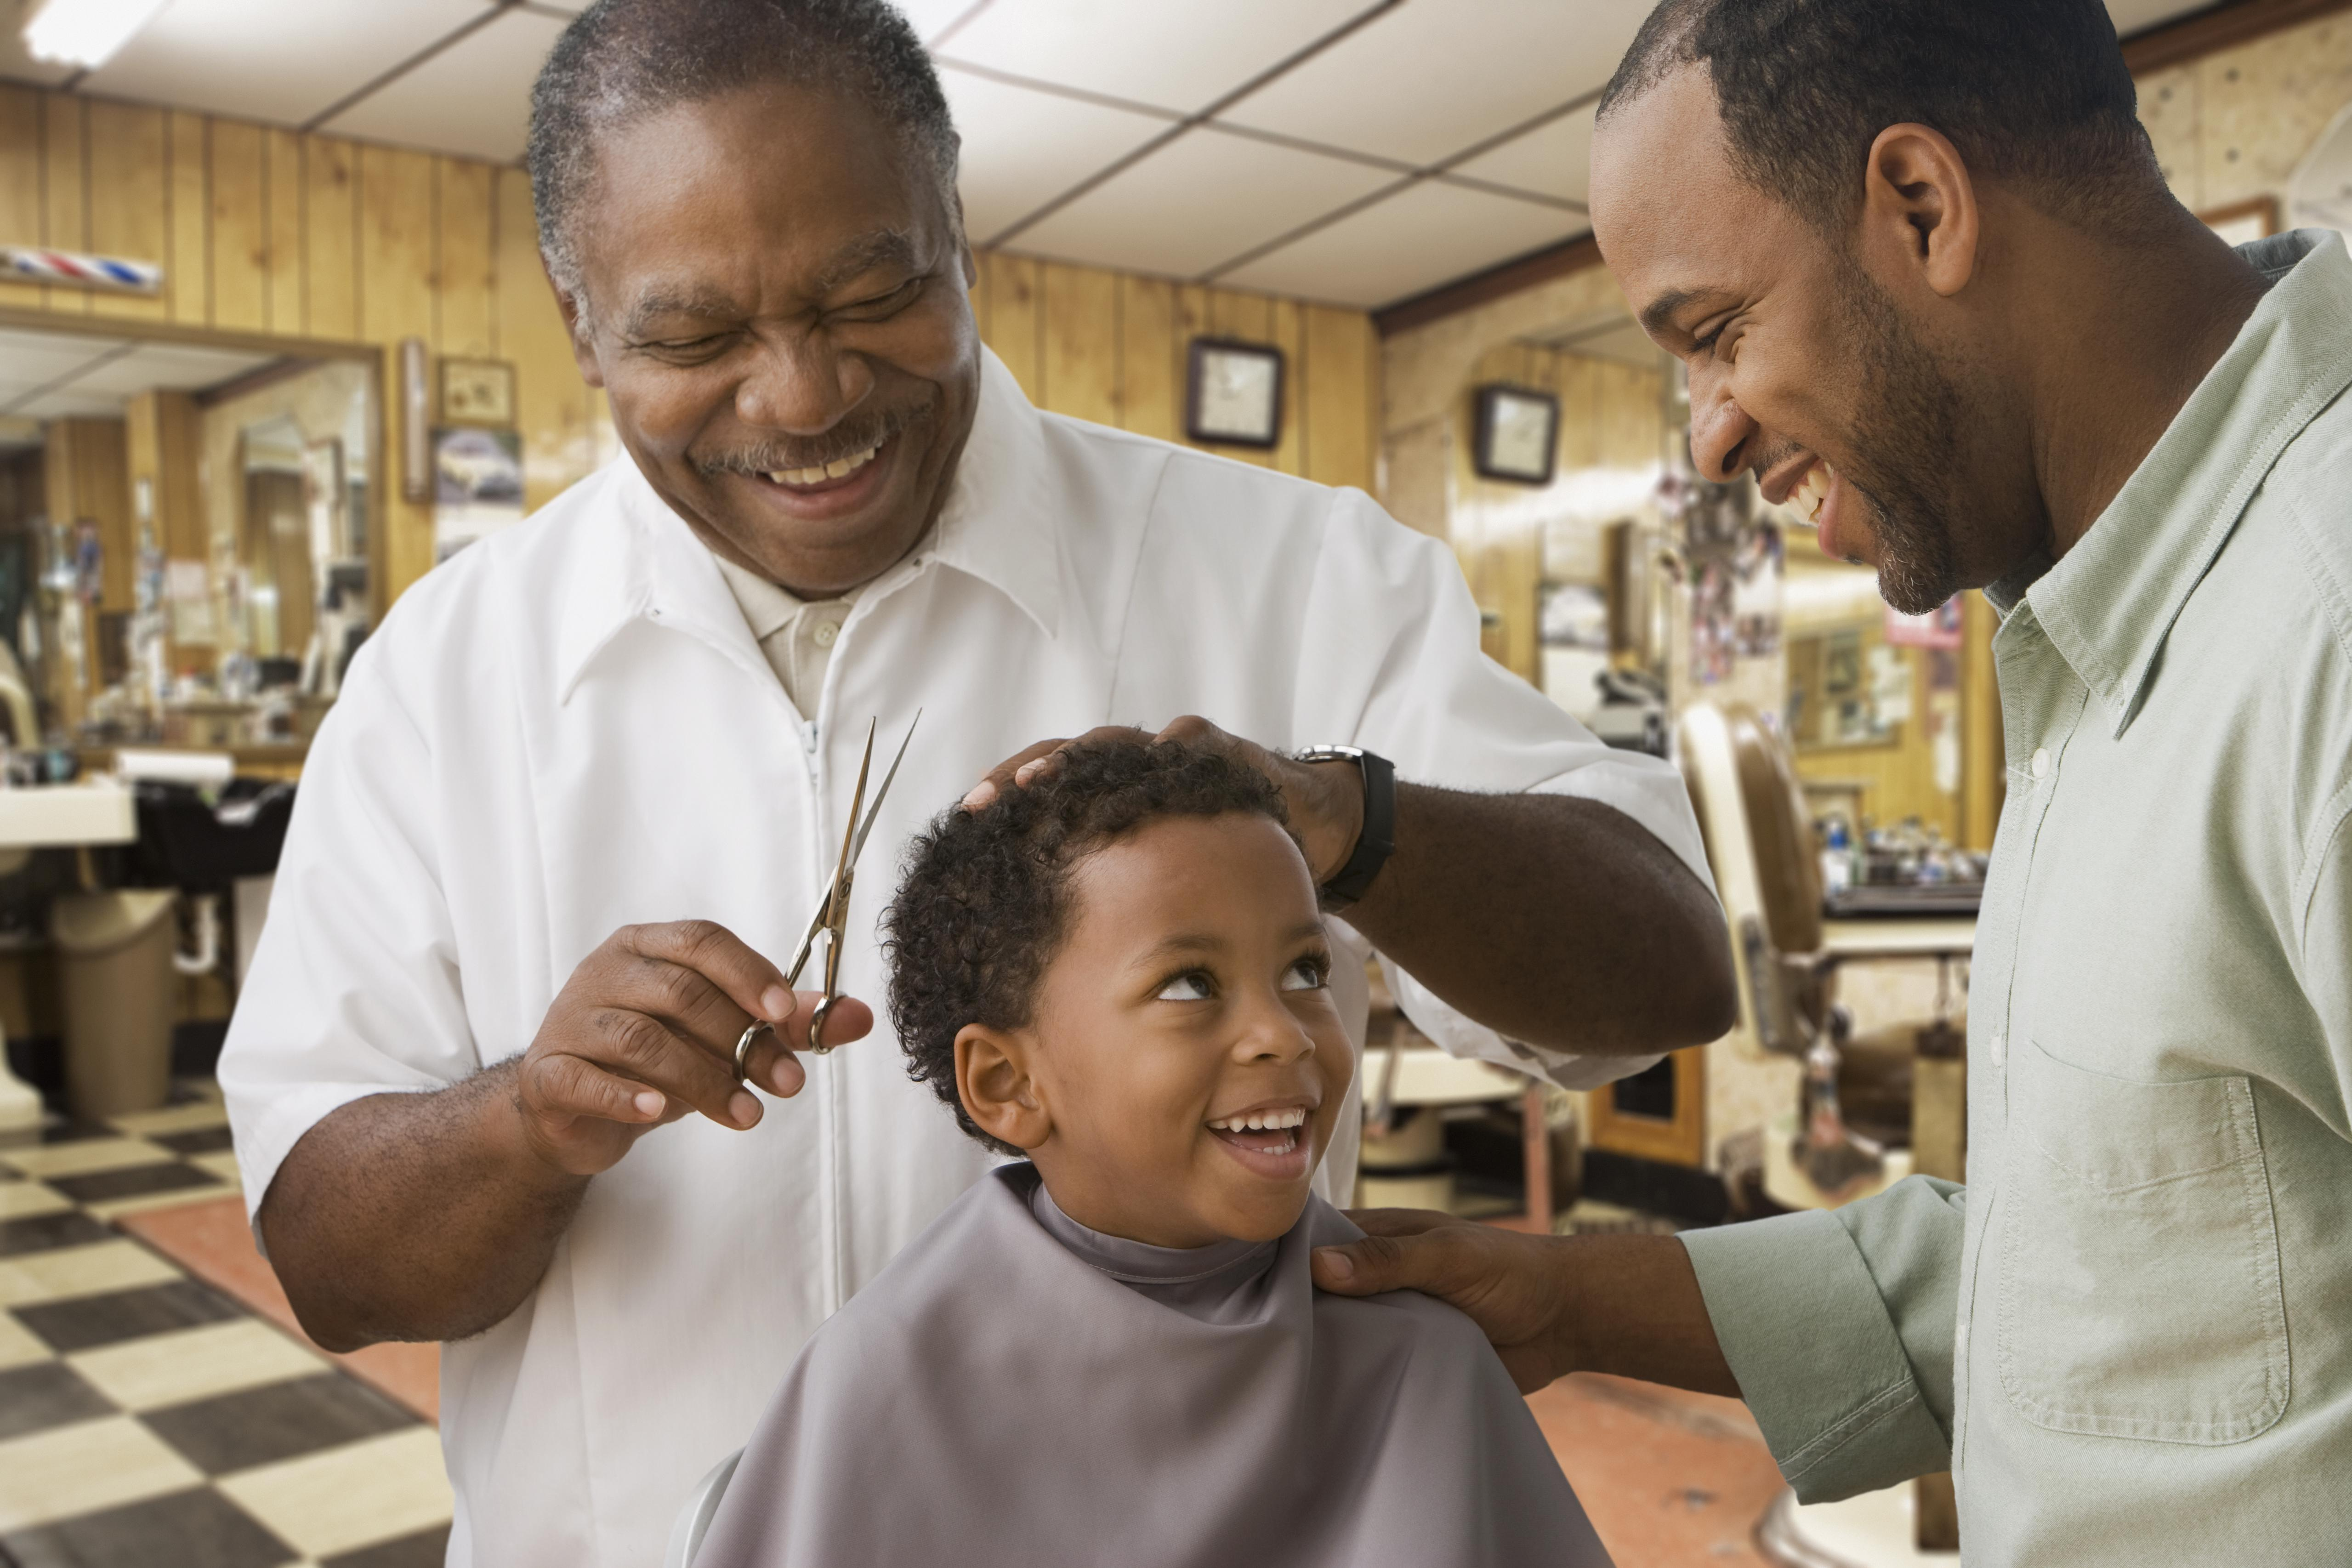 African boy with father getting haircut at barbershop